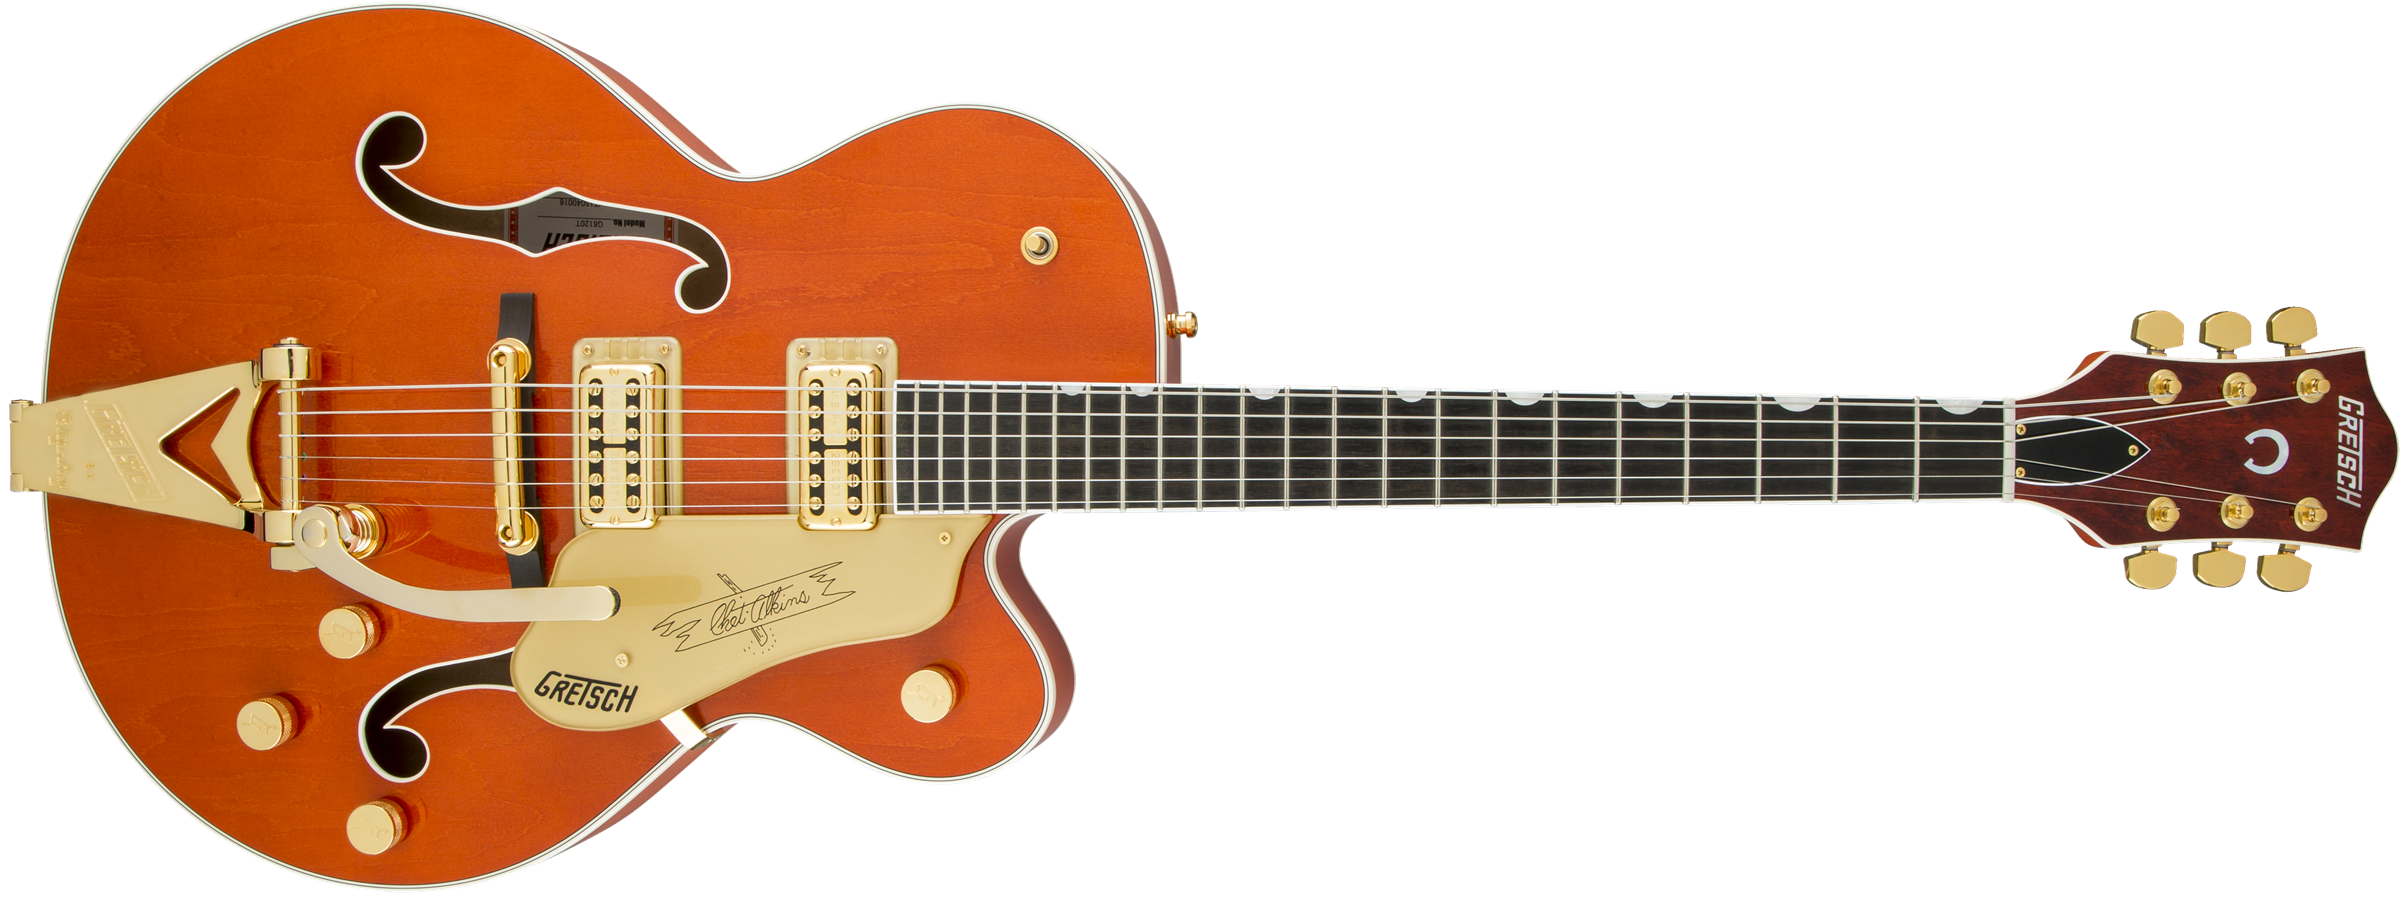 GRETSCH-G6120T-Players-Edition-Nashville-with-String-Thru-Bigsby-FilterTron-Pickups-Orange-Stain-sku-571000149